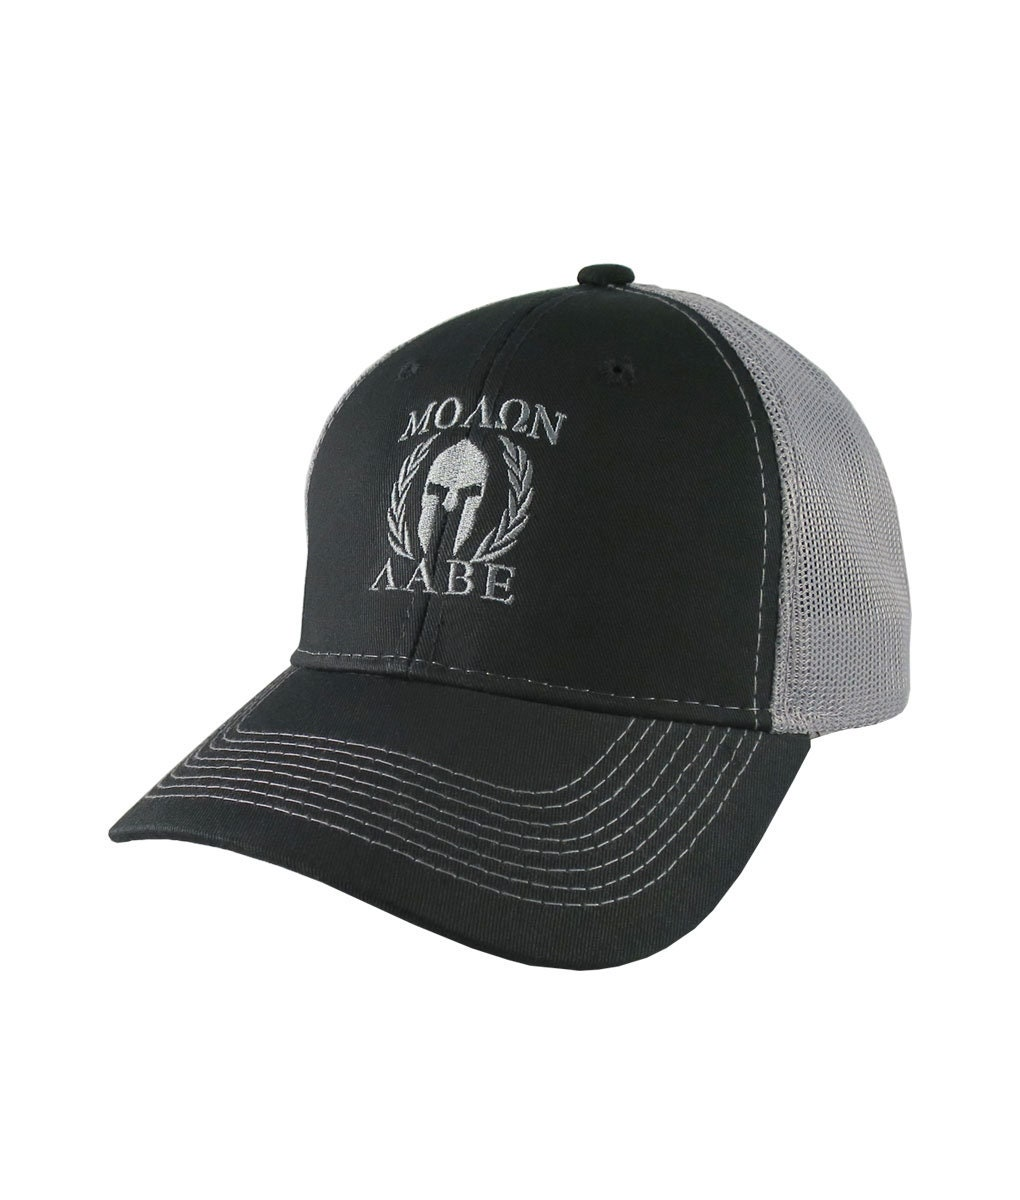 b6934861 Molon Labe Roman Spartan Warrior Mask in Laurels Silver Embroidery on an  Adjustable Black Structured Truckers Style Snapback Ball Cap